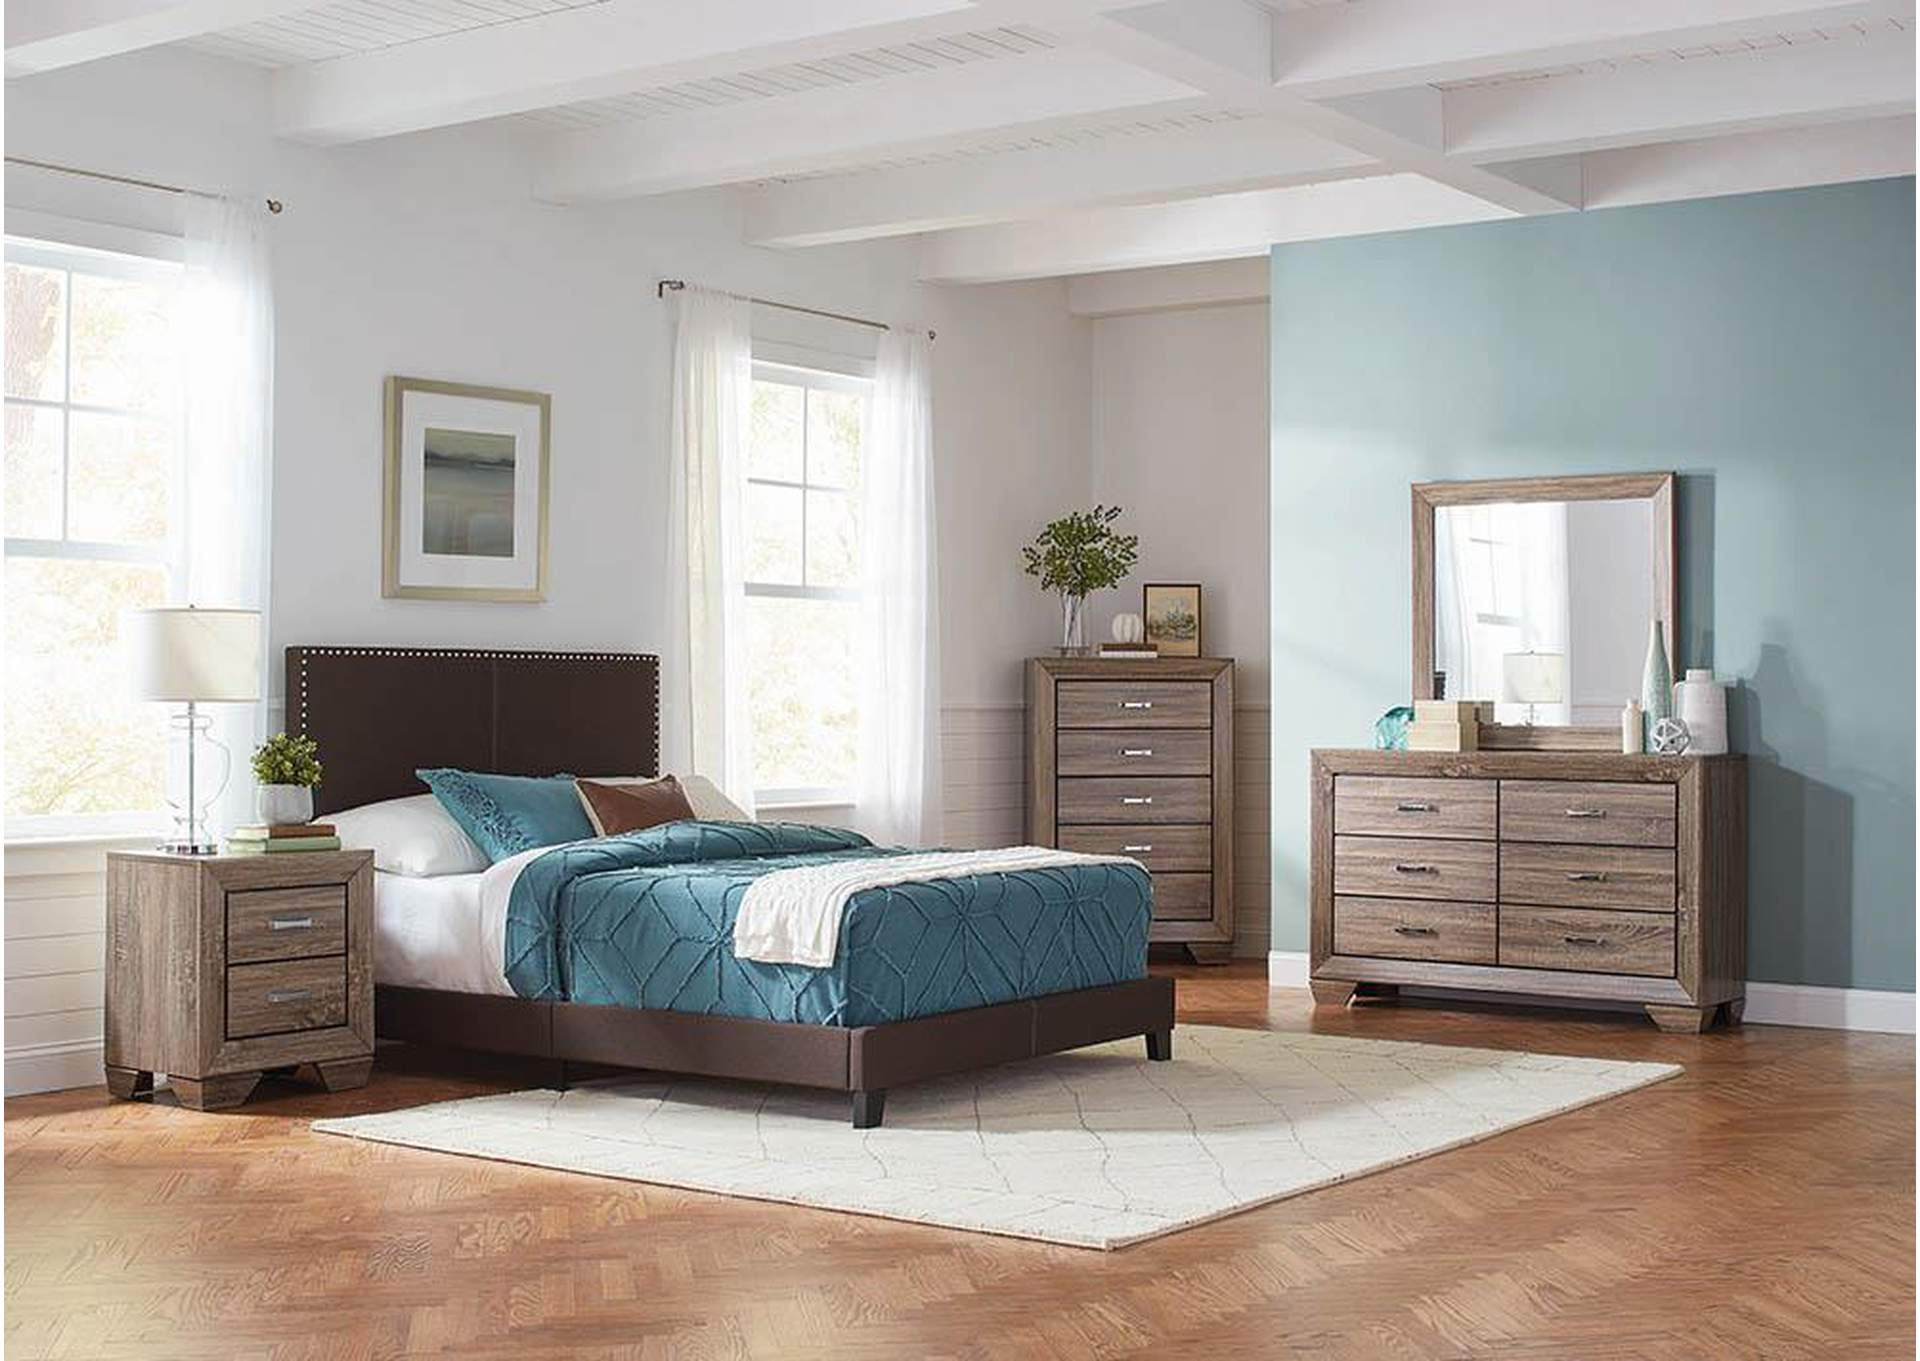 Fat Daddy s Furniture Brown Upholstered Queen Bed